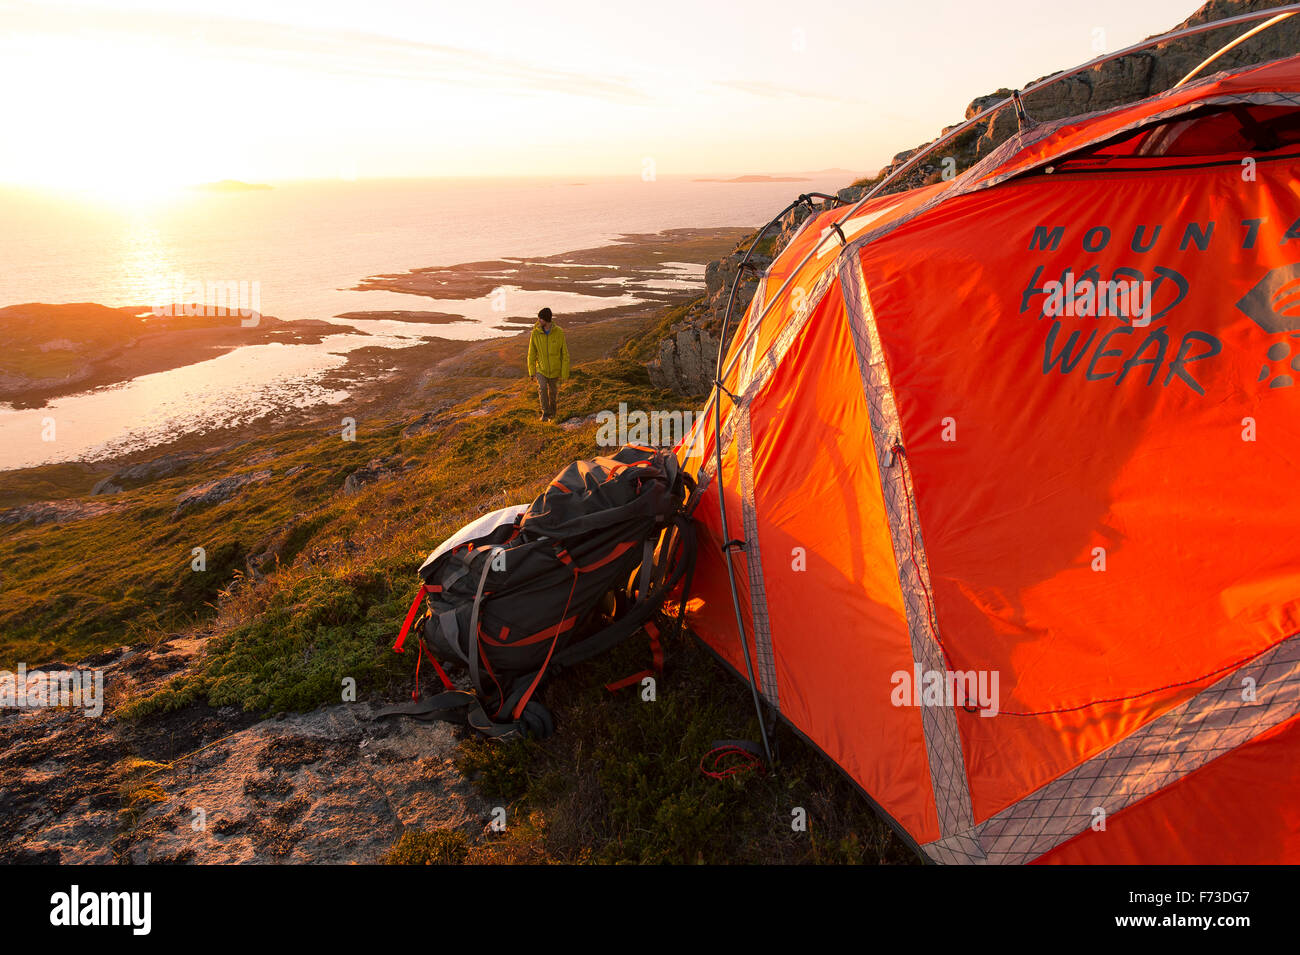 Camping during the midnight sun - Stock Image